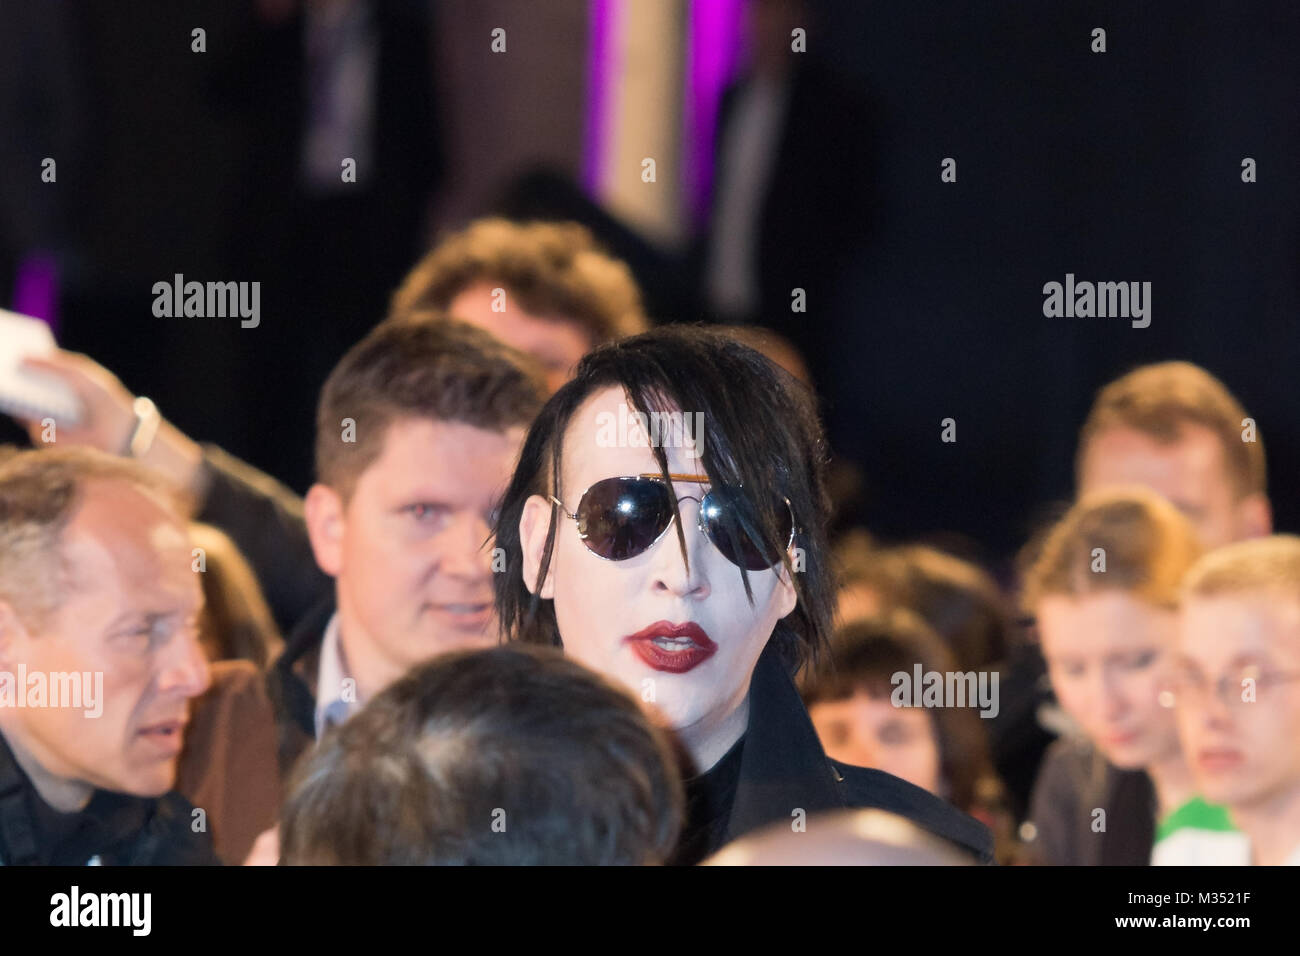 marilyn manson fans stock photos marilyn manson fans stock images alamy. Black Bedroom Furniture Sets. Home Design Ideas